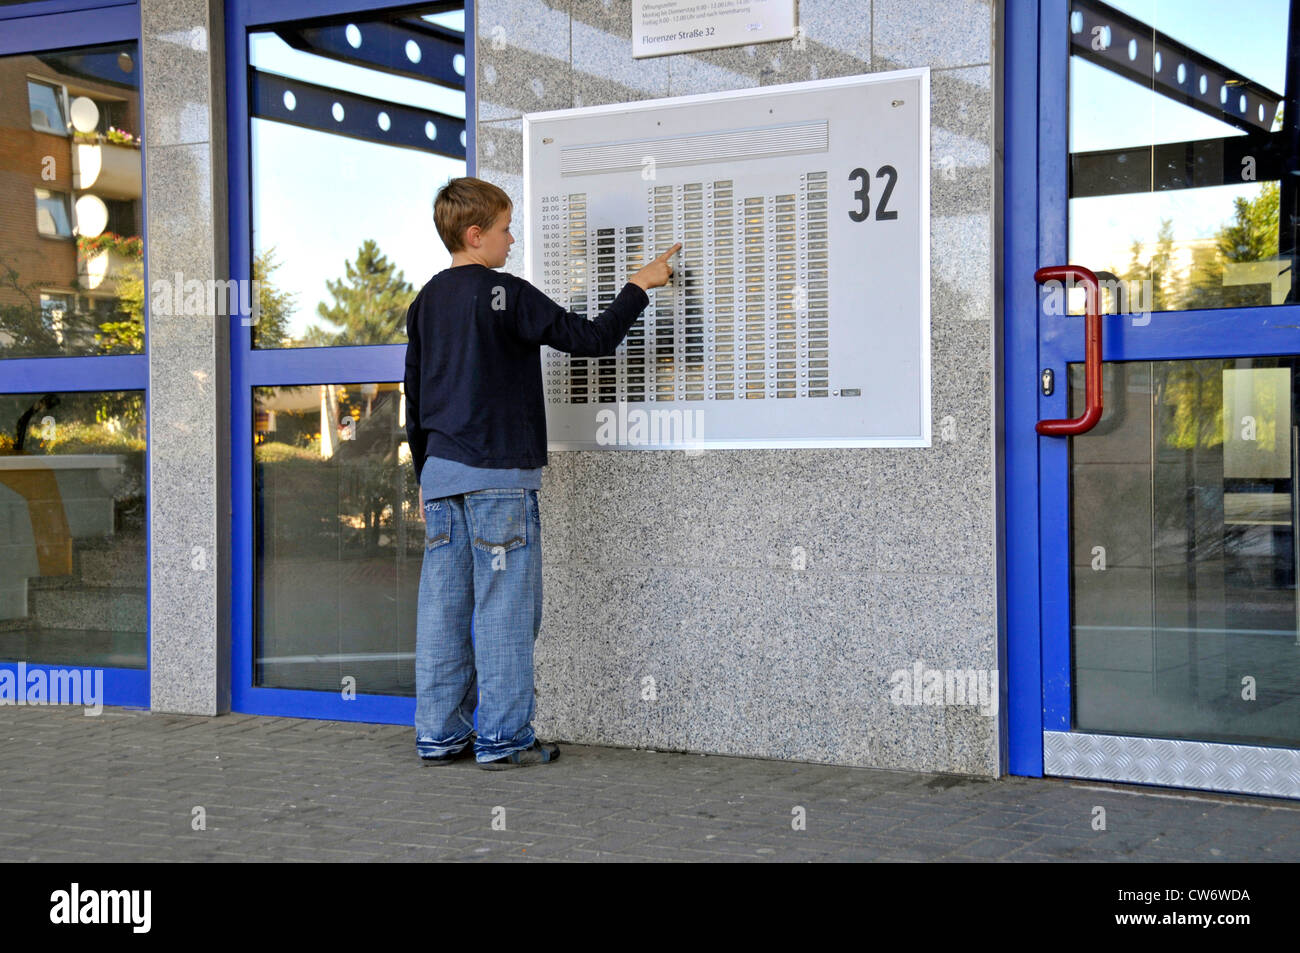 9 years old boy at a door plate of a multi-story building in Chorweiler, Germany, North Rhine-Westphalia, Cologne - Stock Image